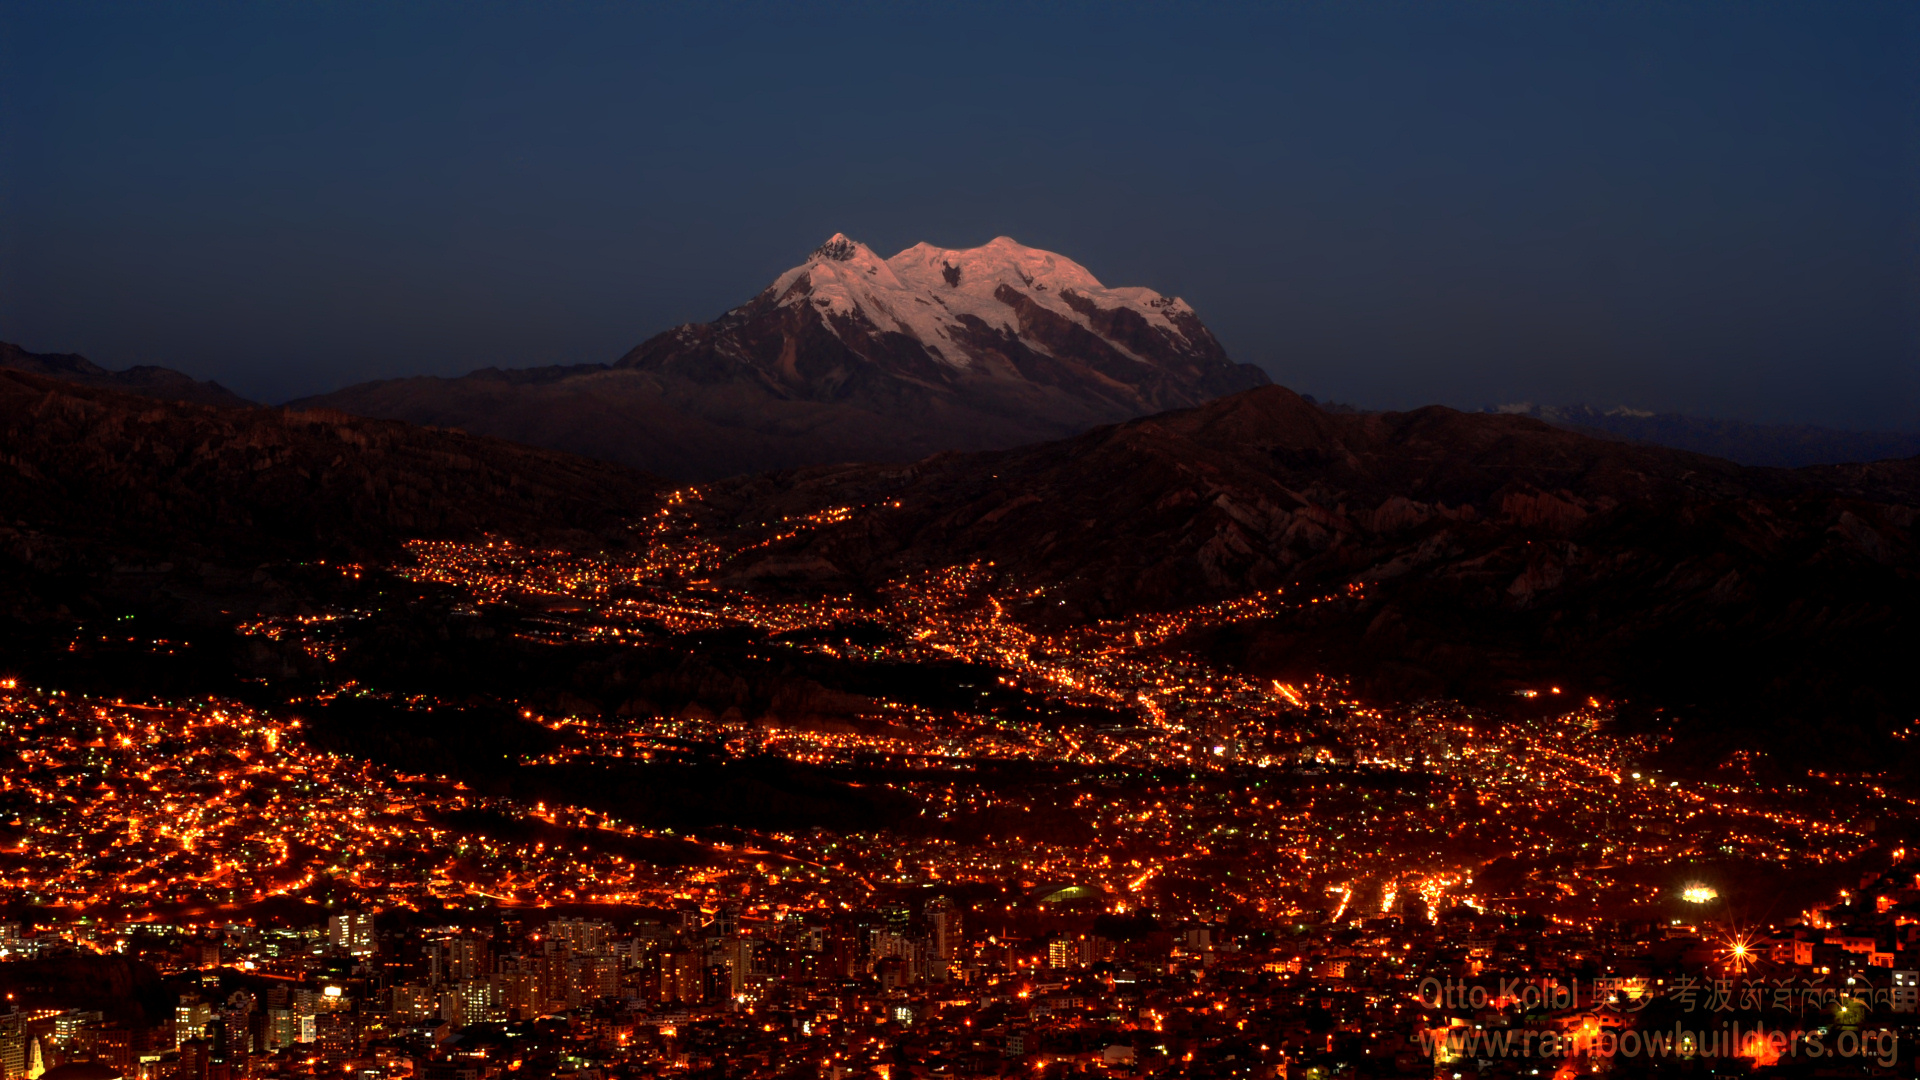 La Paz after sunset, with the Illimani in the background, taken from El Alto.